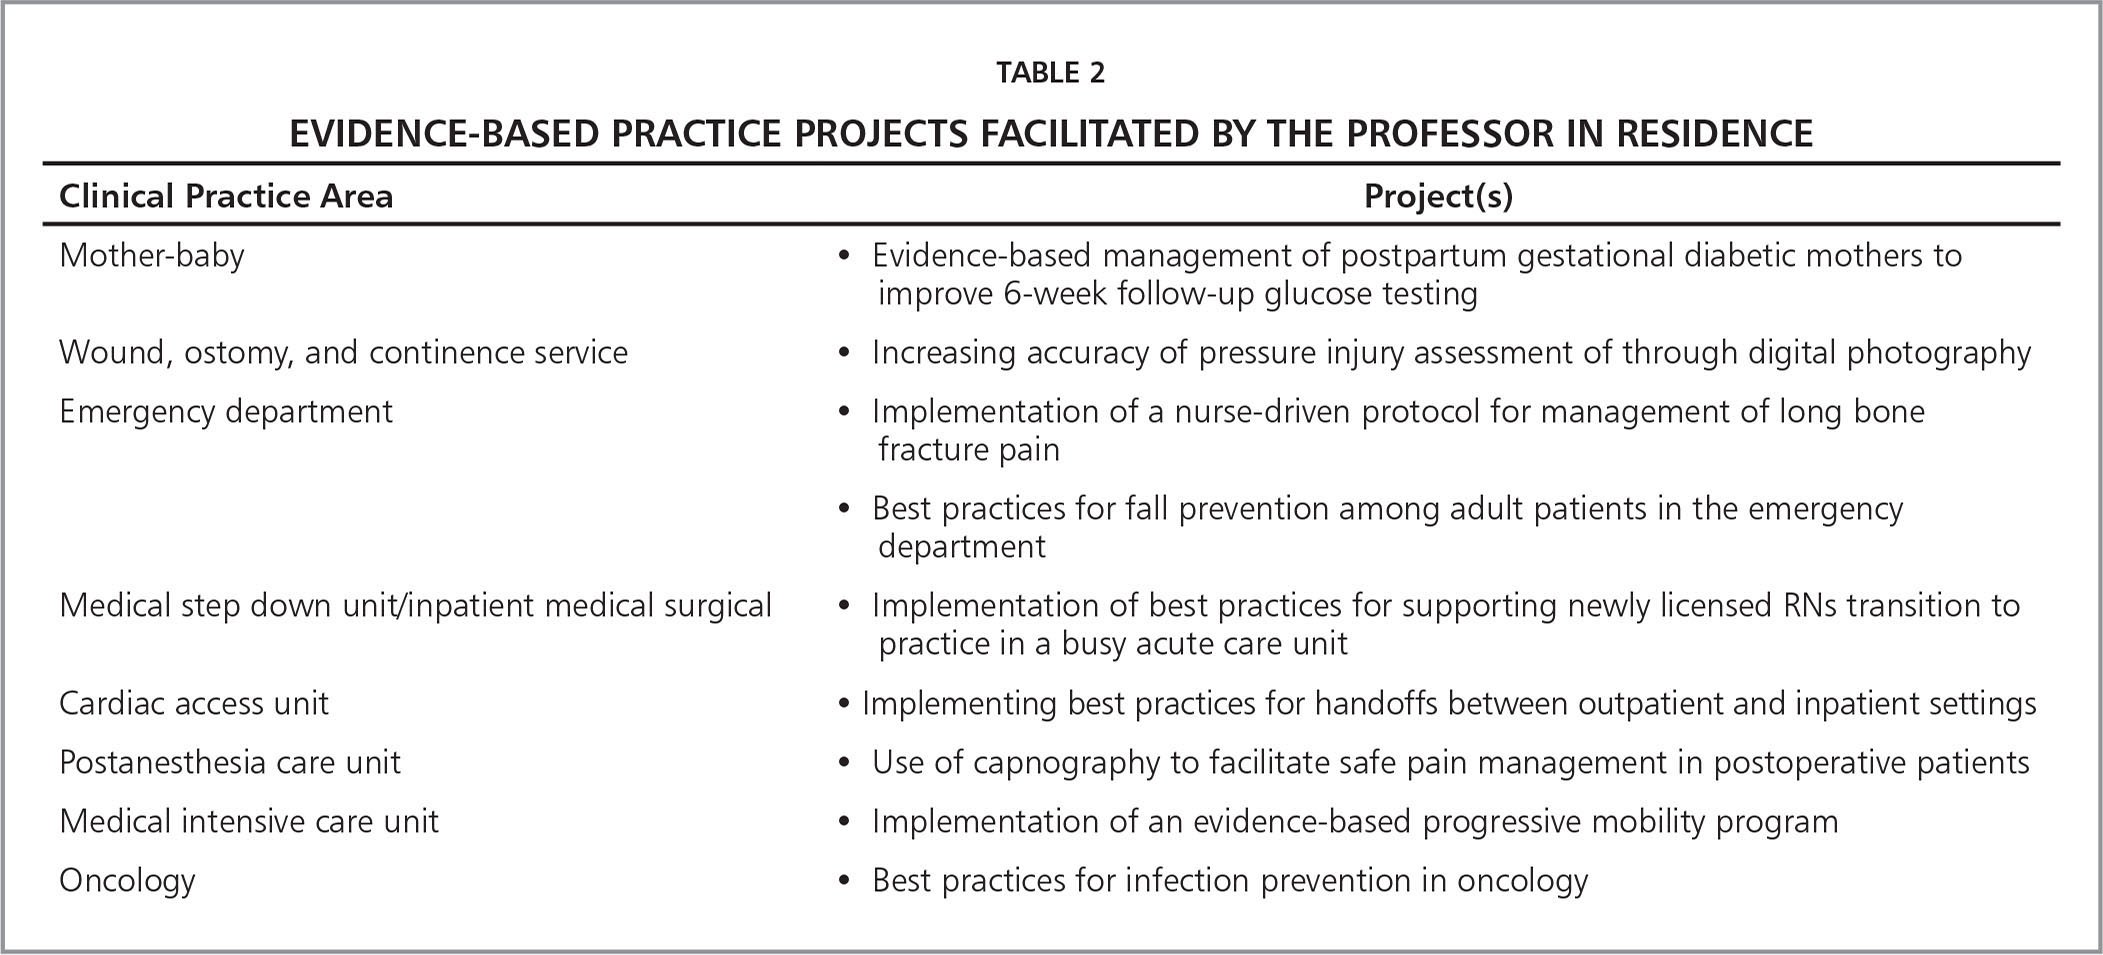 Evidence-Based Practice Projects Facilitated by the Professor in Residence